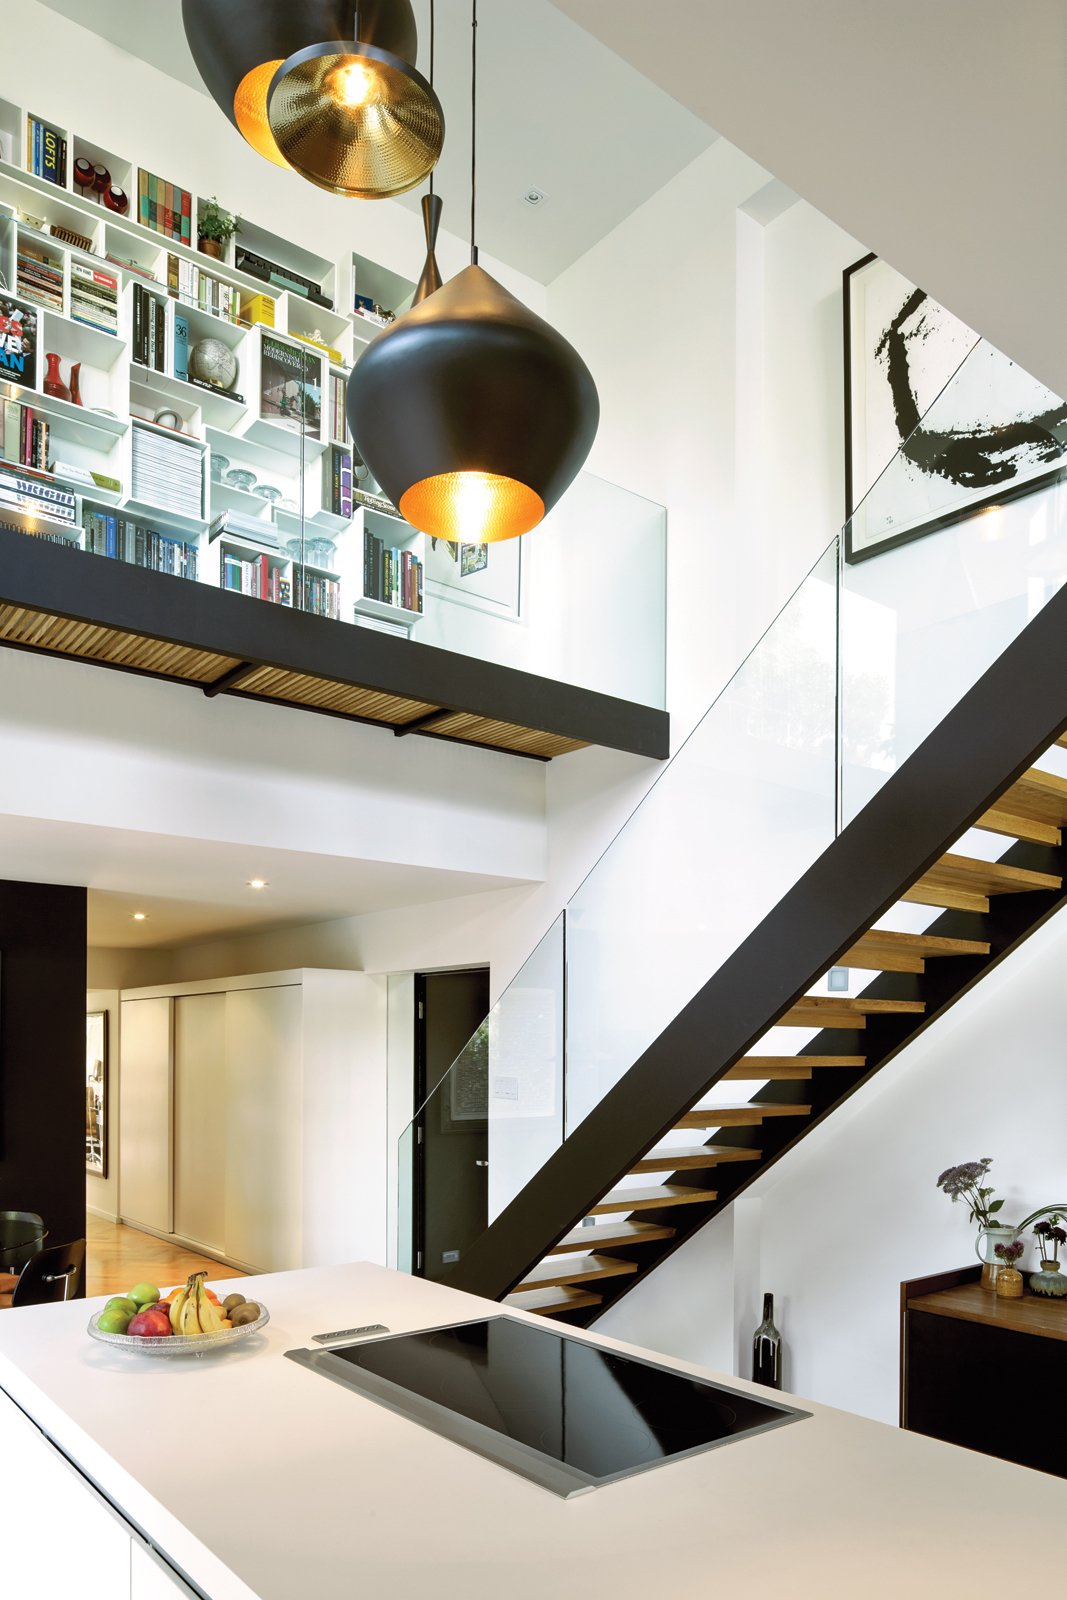 The couple's white Bulthaup kitchen is set within a double-height volume hung with Tom Dixon Beat lights, arranged in a custom configuration by interior designer Maria Rosa Di Ioia. Overhead, Cubit shelving artfully displays books and objects, accessible by a glass-walled footbridge added during the renovation. Tagged: Staircase and Wood Tread.  Photo 3 of 9 in A Renovated Flat in Moshe Safdie's Habitat '67